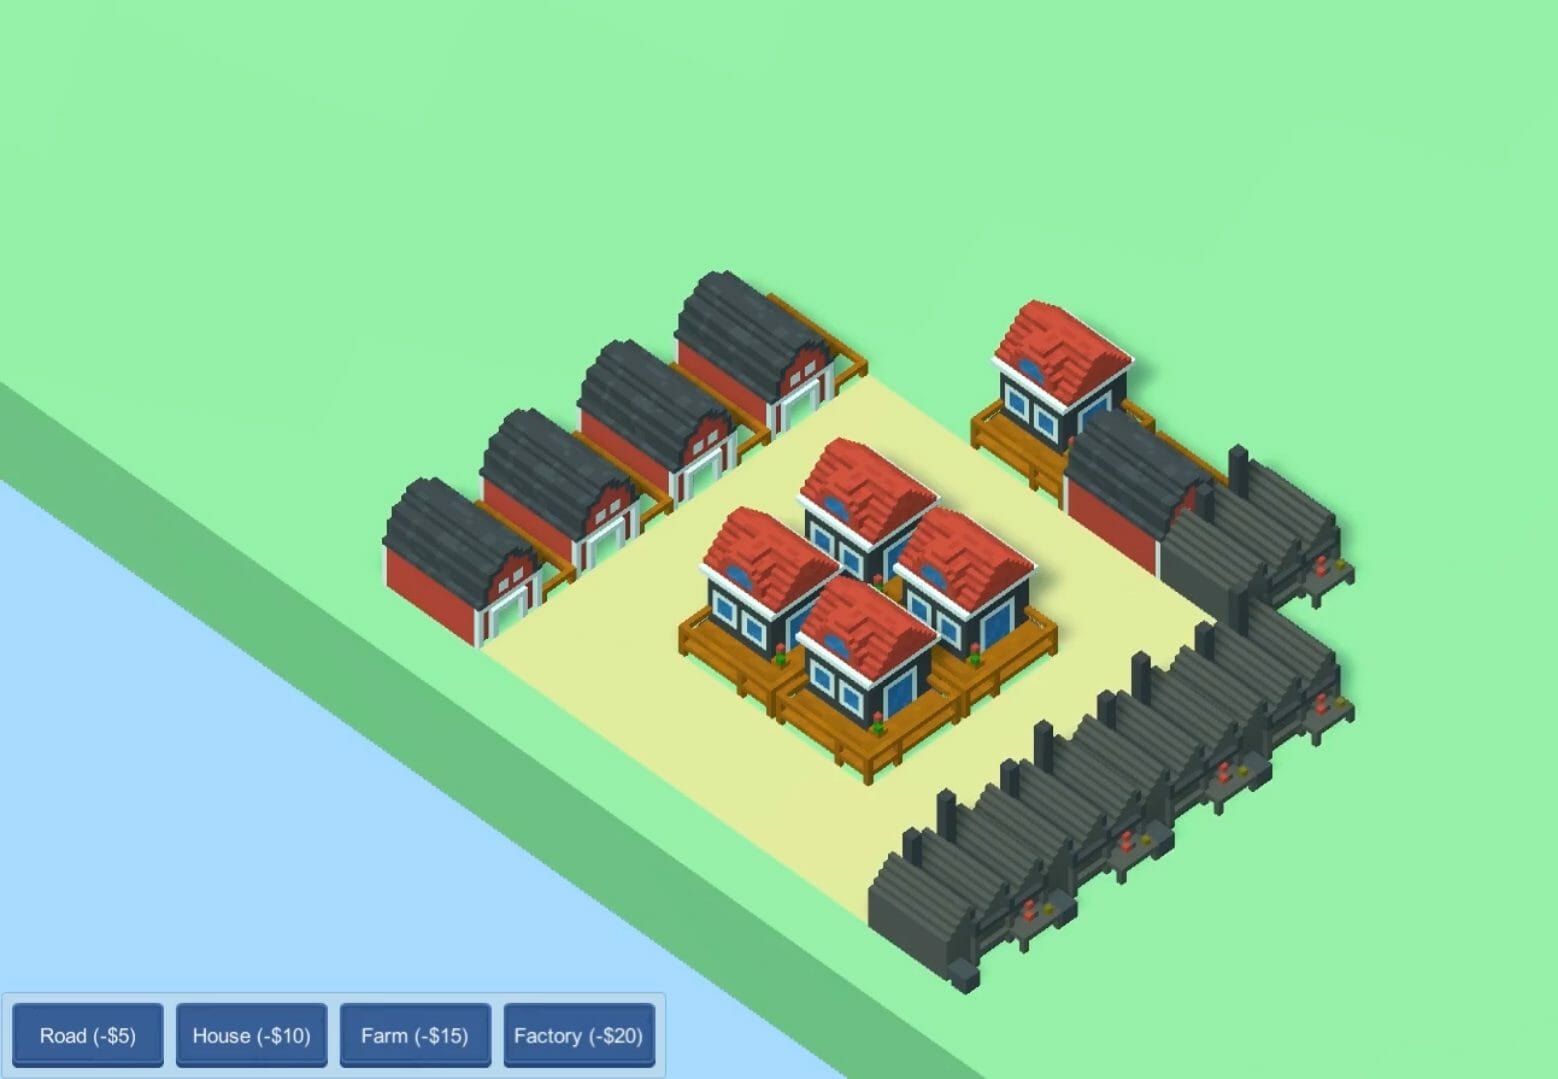 City building game made with Unity and C#